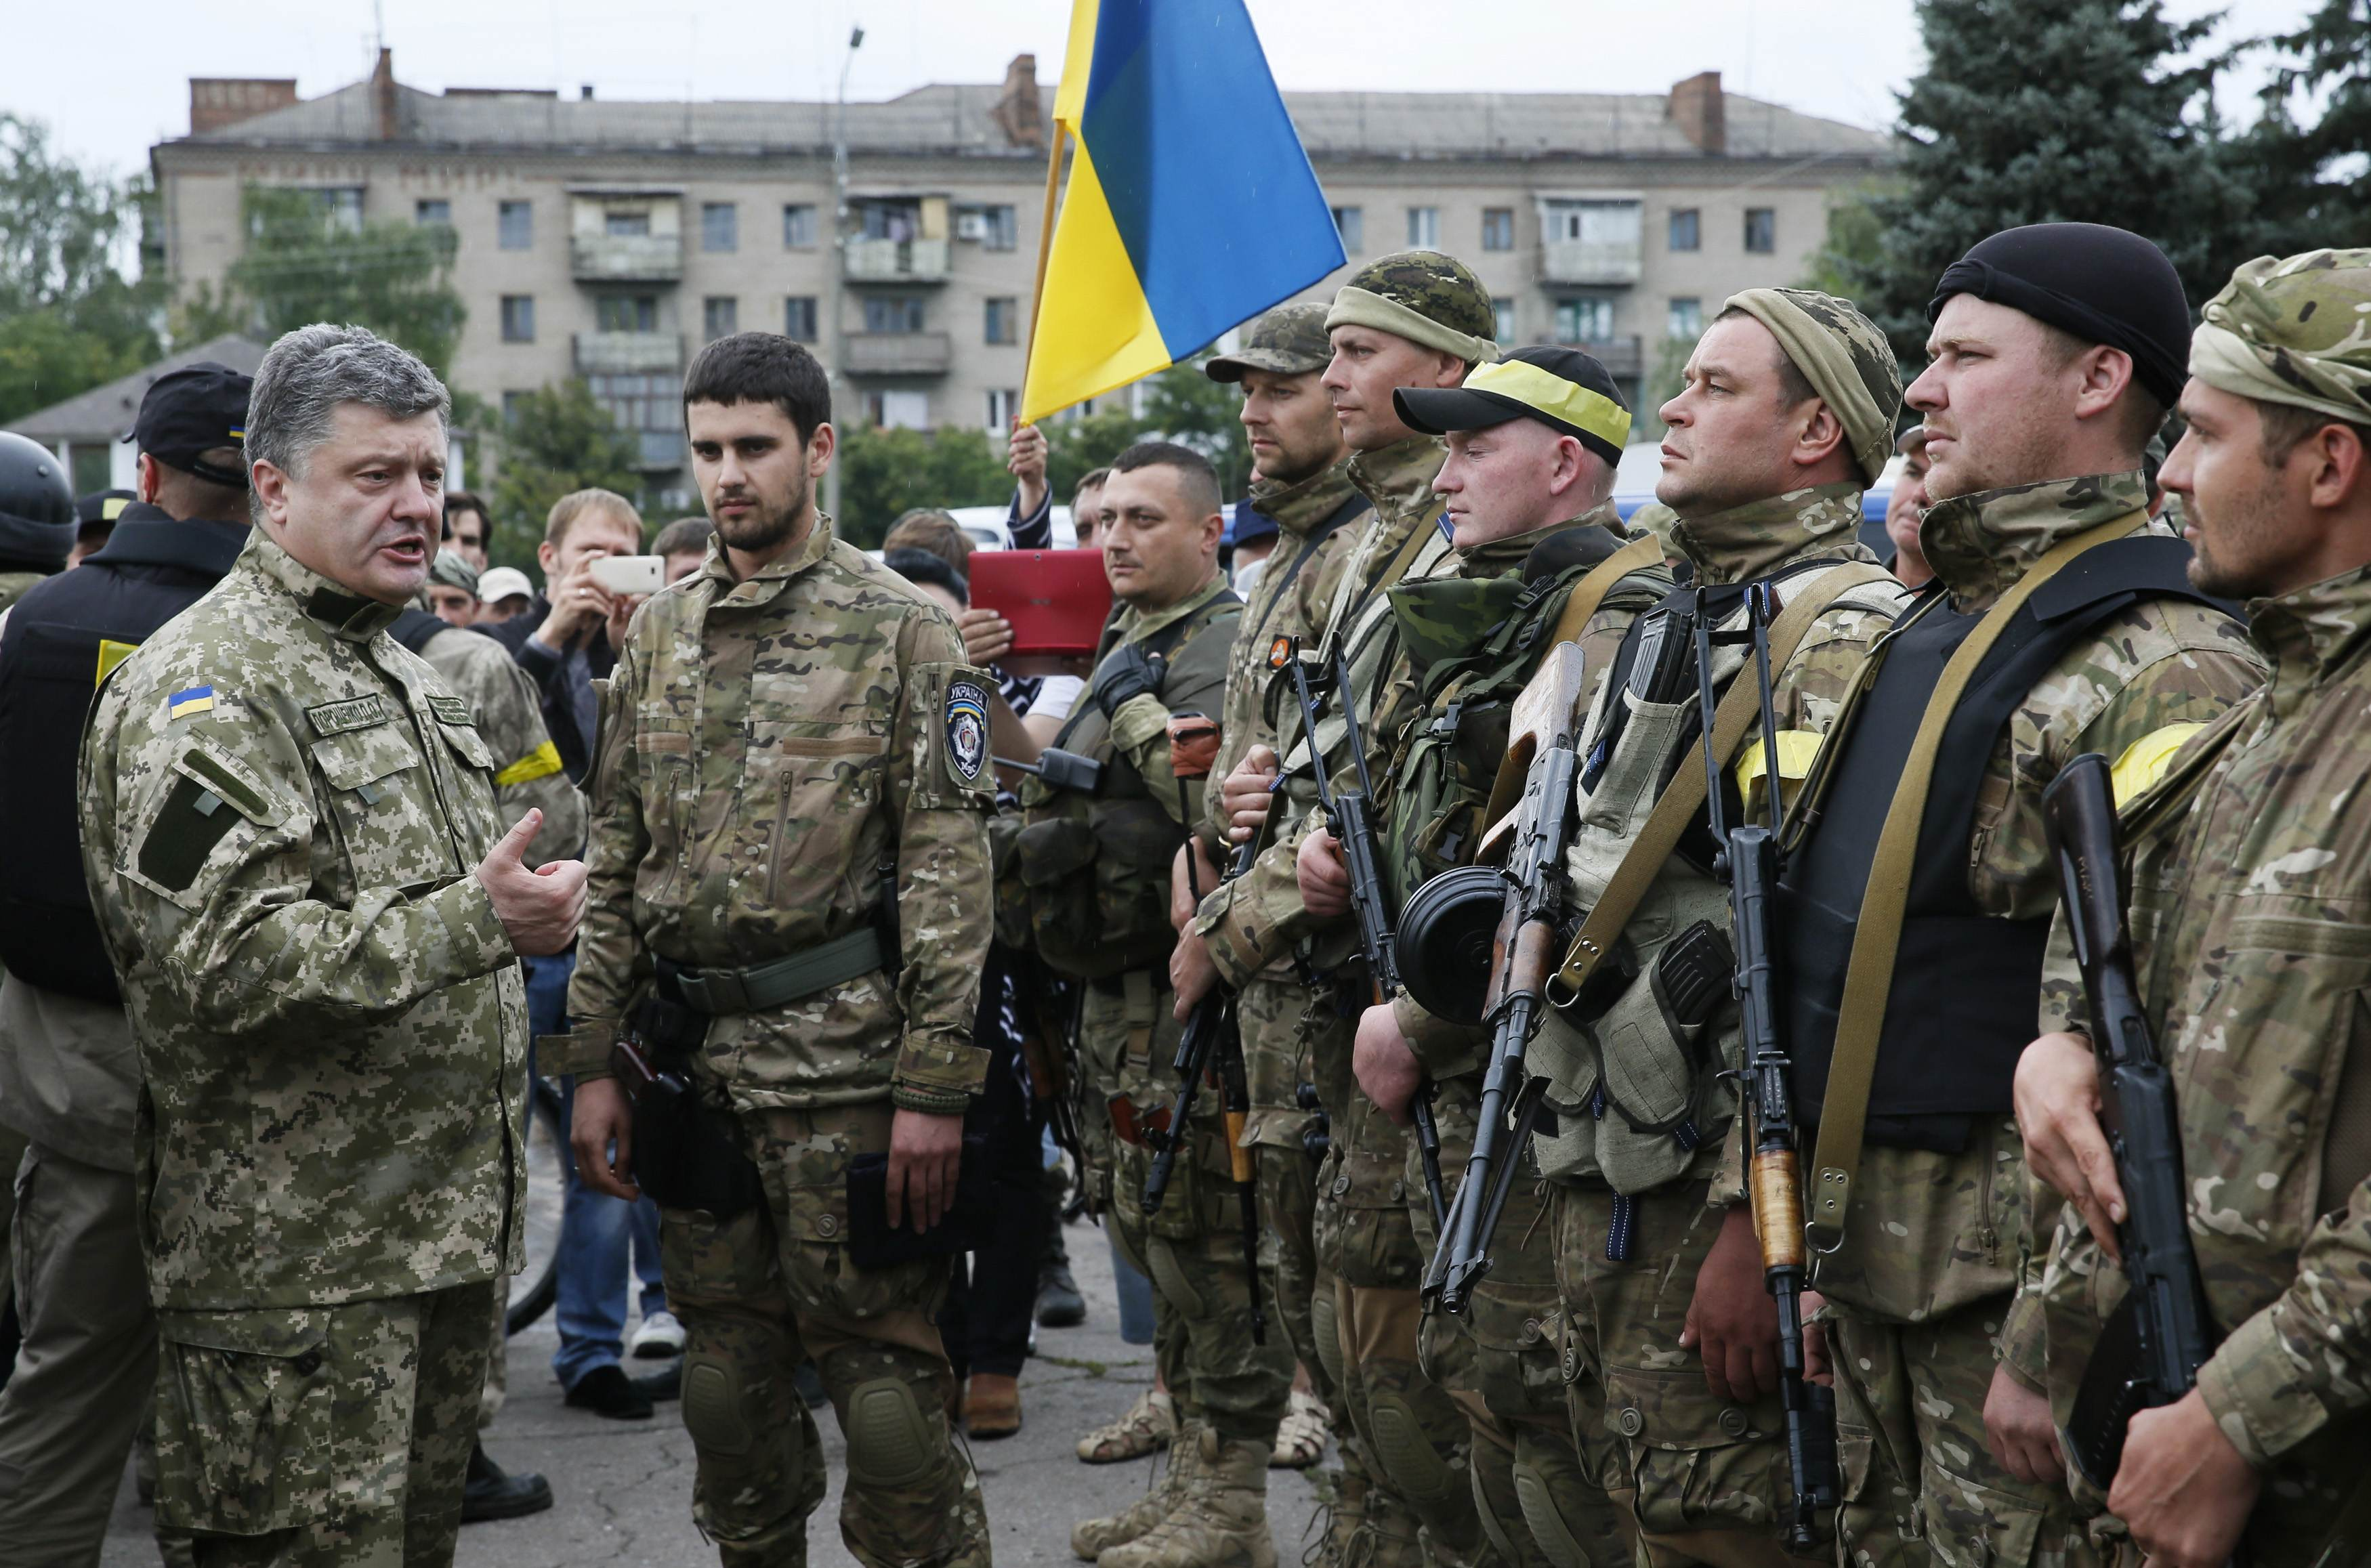 Ukrainian President Petro Poroshenko addresses members of the Ukrainian special task police squadron in the eastern Ukrainian town of Slaviansk